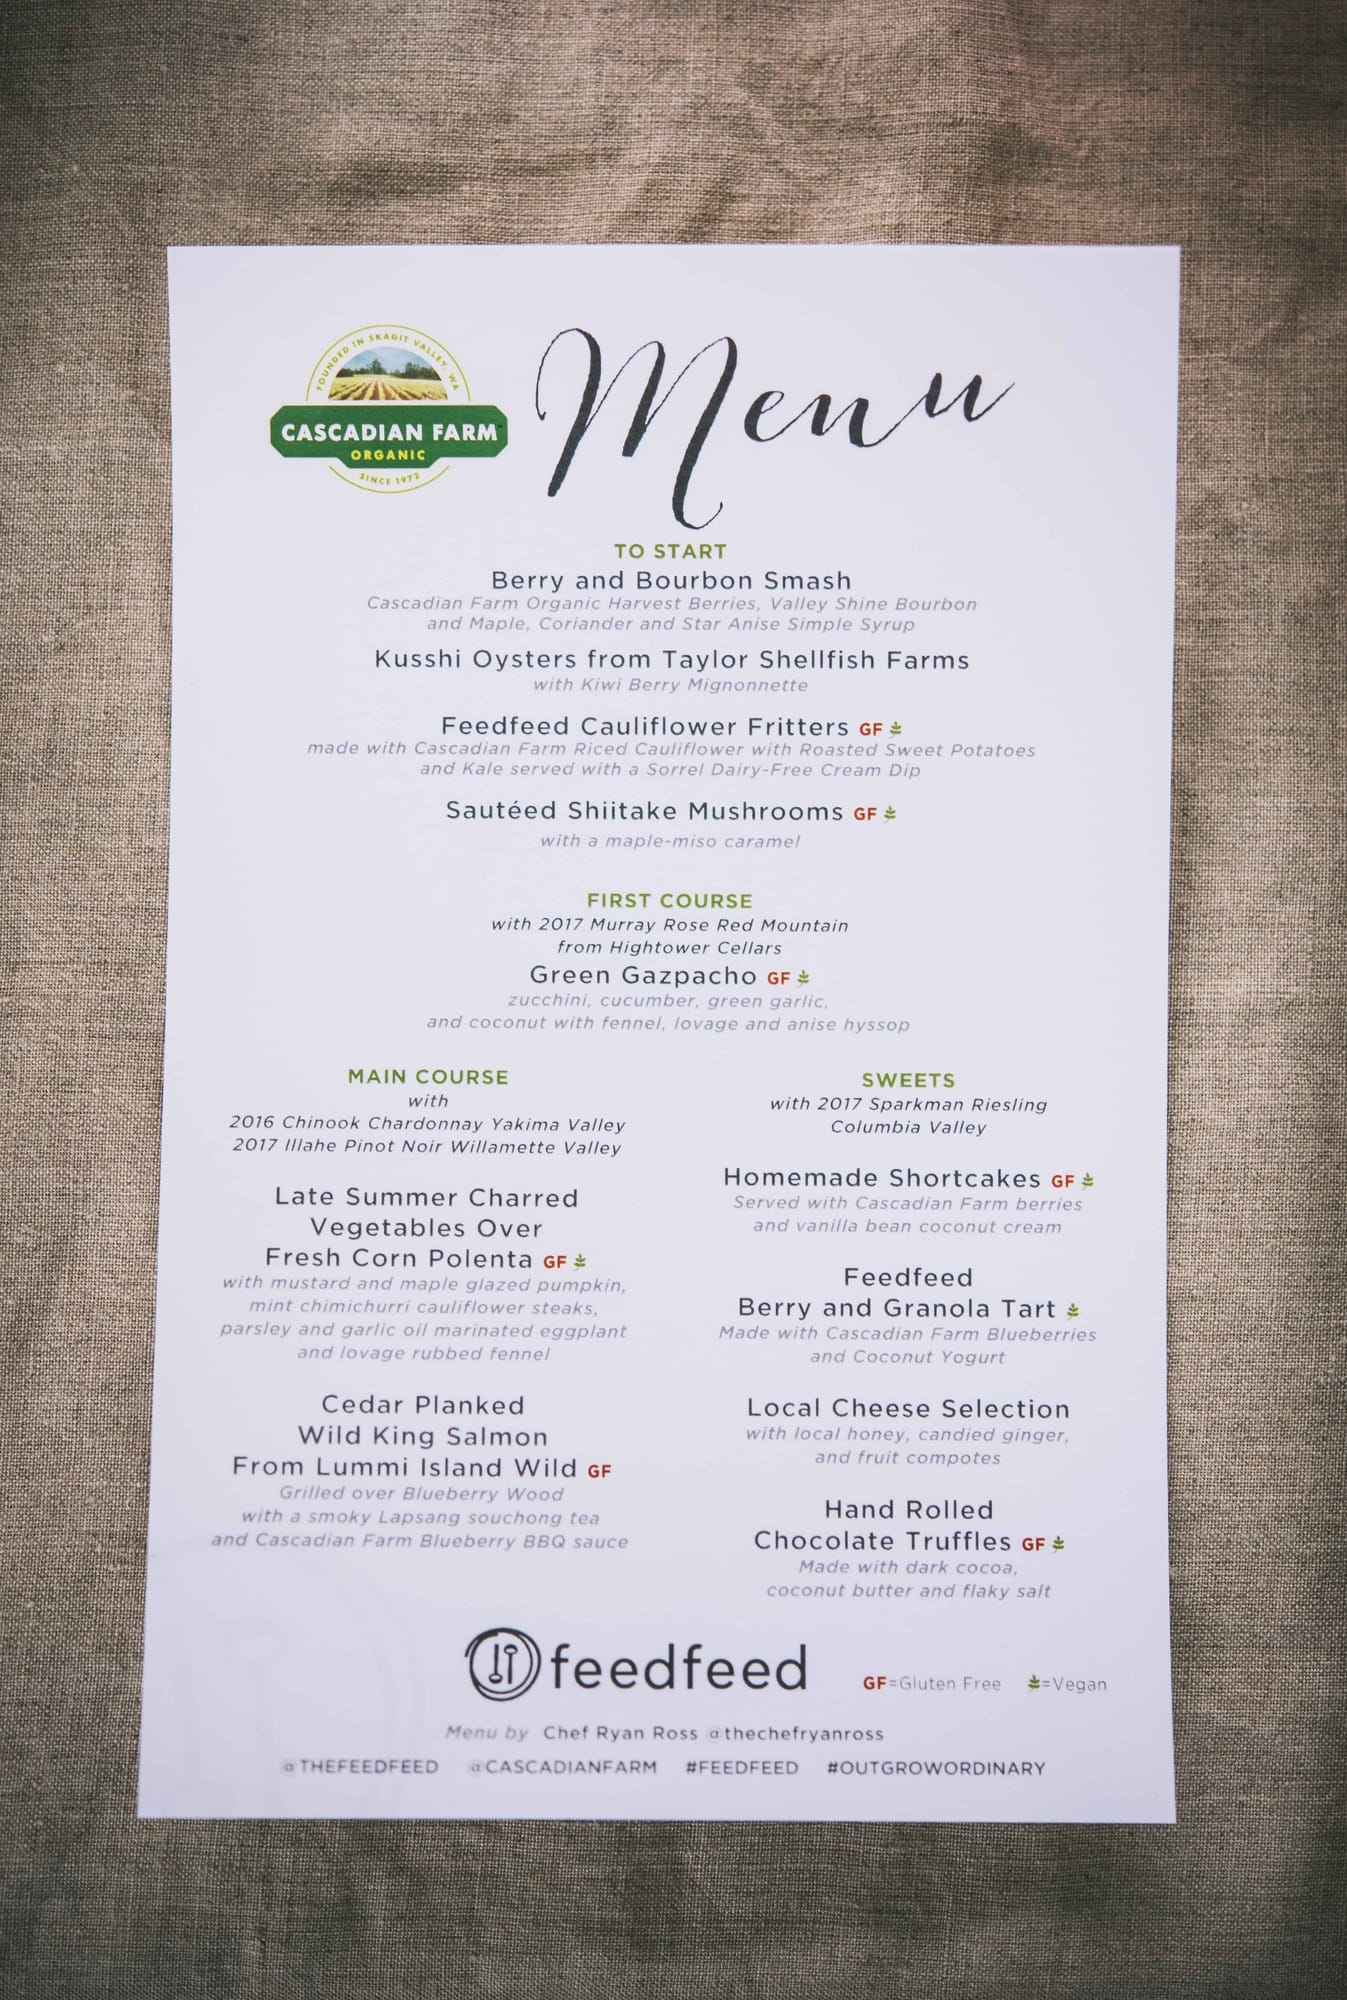 View of dinner party menu at Cascadian Farms